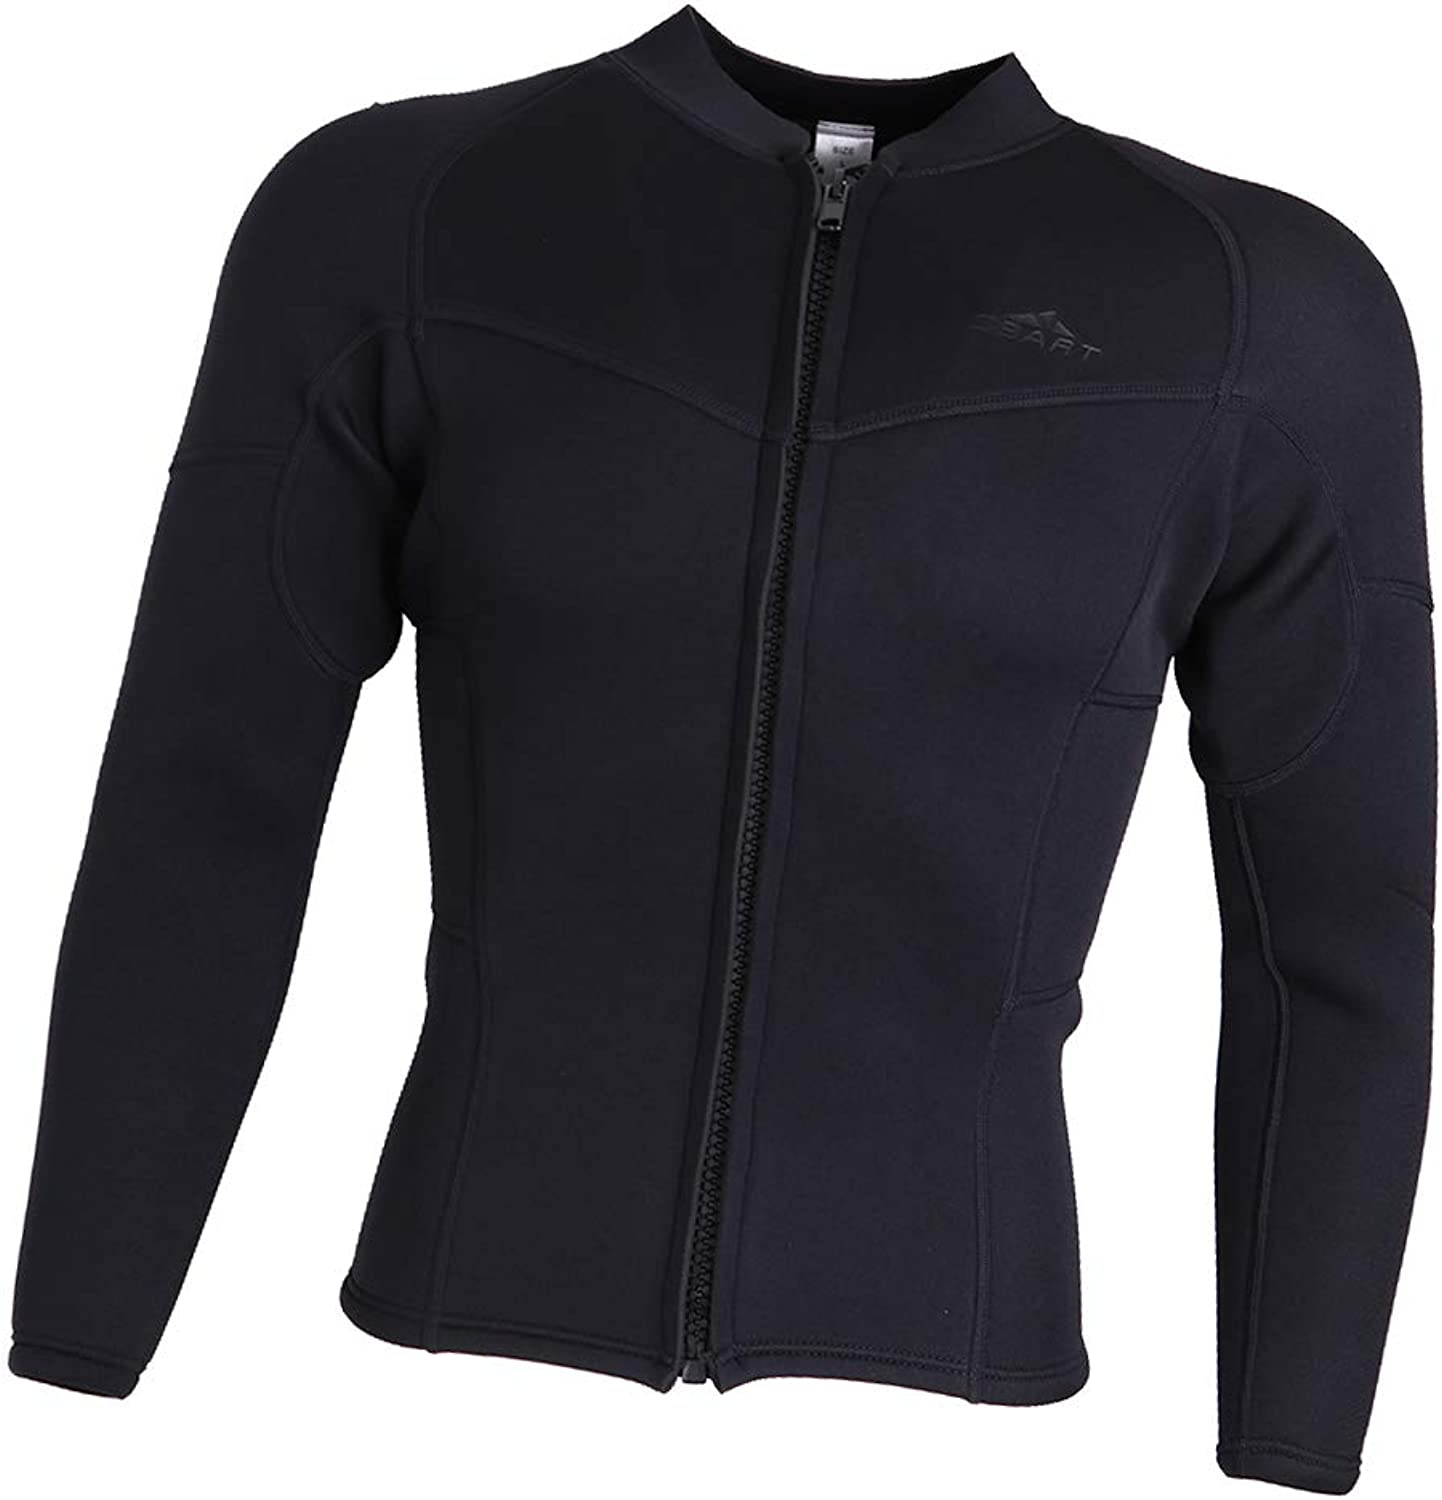 Baosity 3mm Scuba Diving Suits Surf Rash Guard Long Sleeves Sport Dive Wetsuit Tops Thermal Sports Shirts for Swimming Snorkeling Kayaking Men